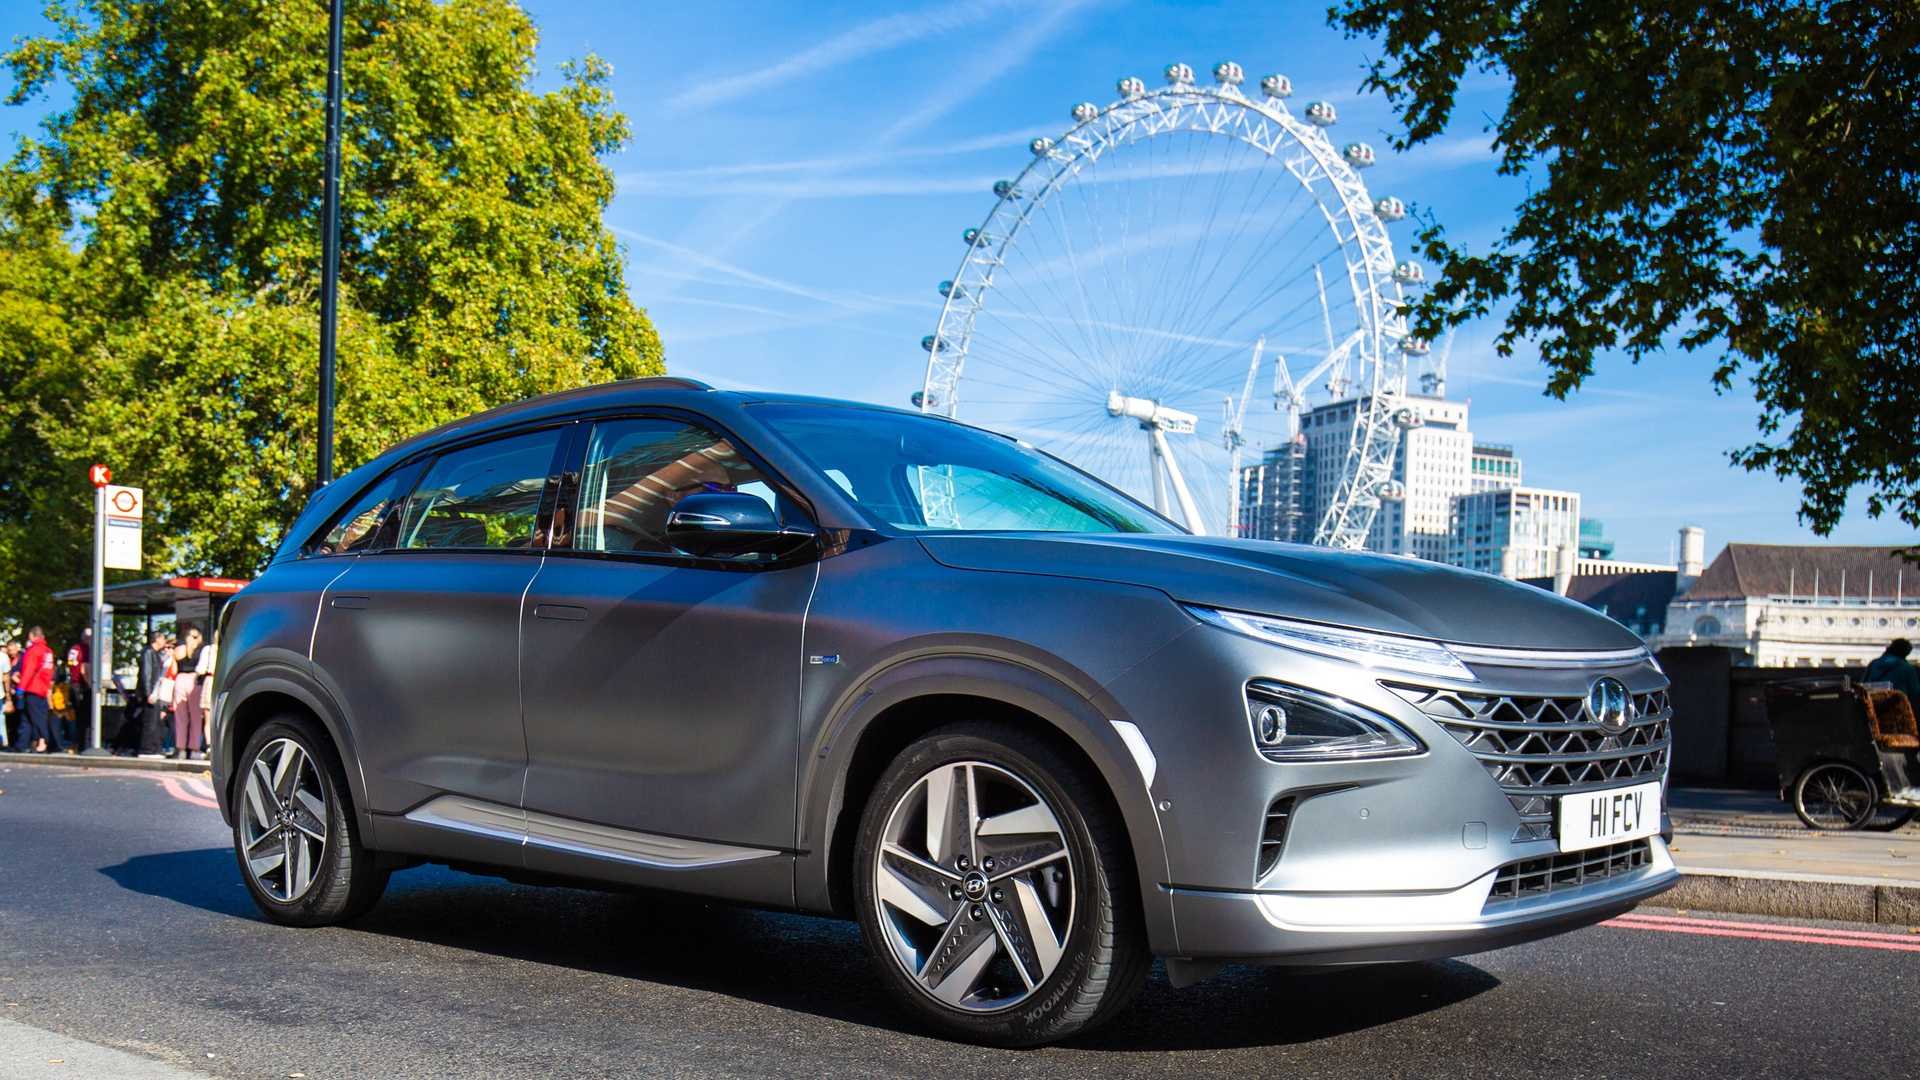 Hyundai_Nexo_London_0012